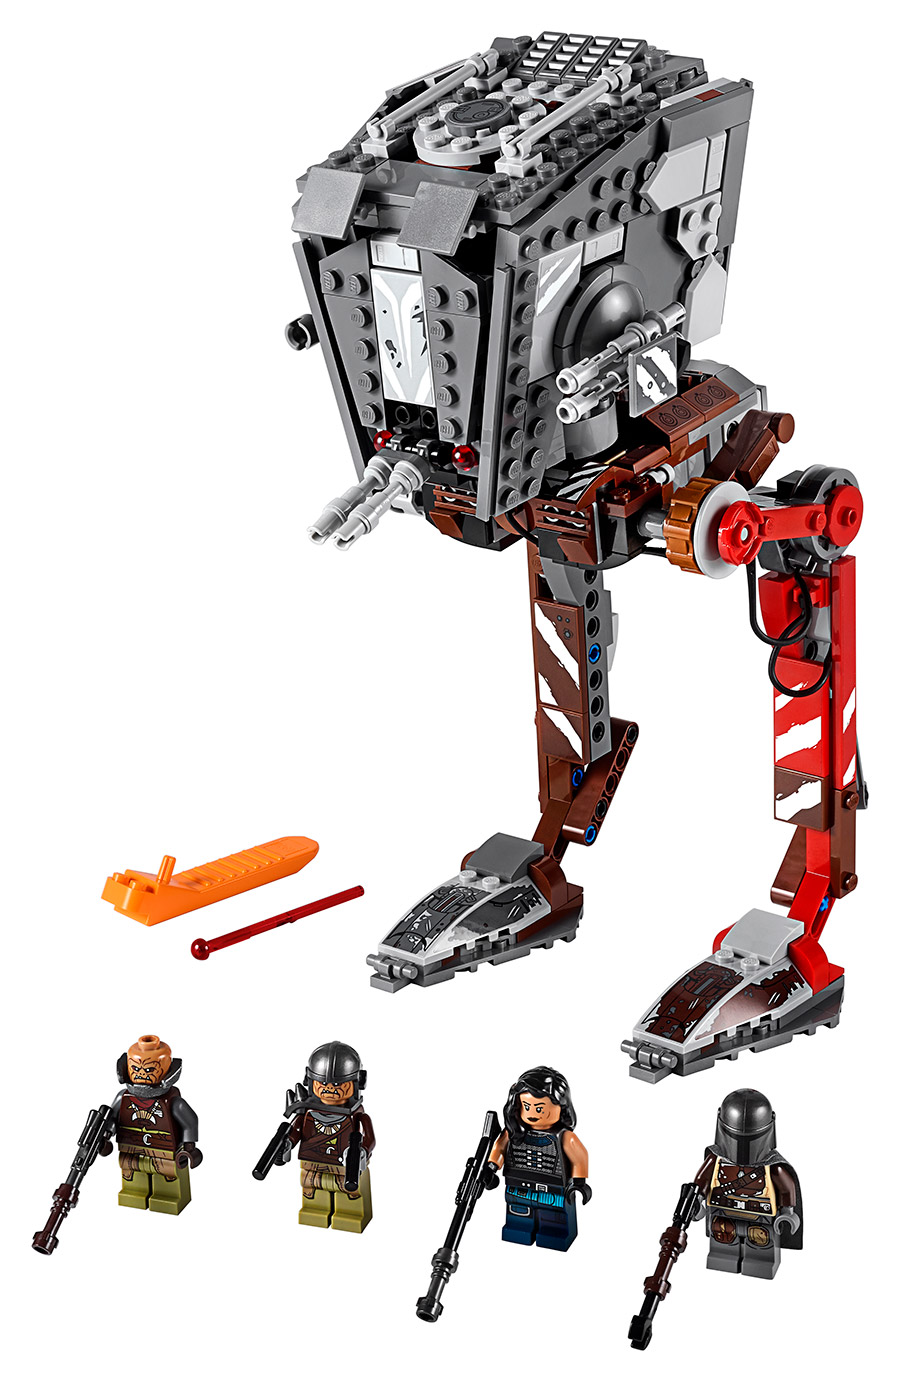 The new LEGO AT-ST Raider from The Mandalorian.